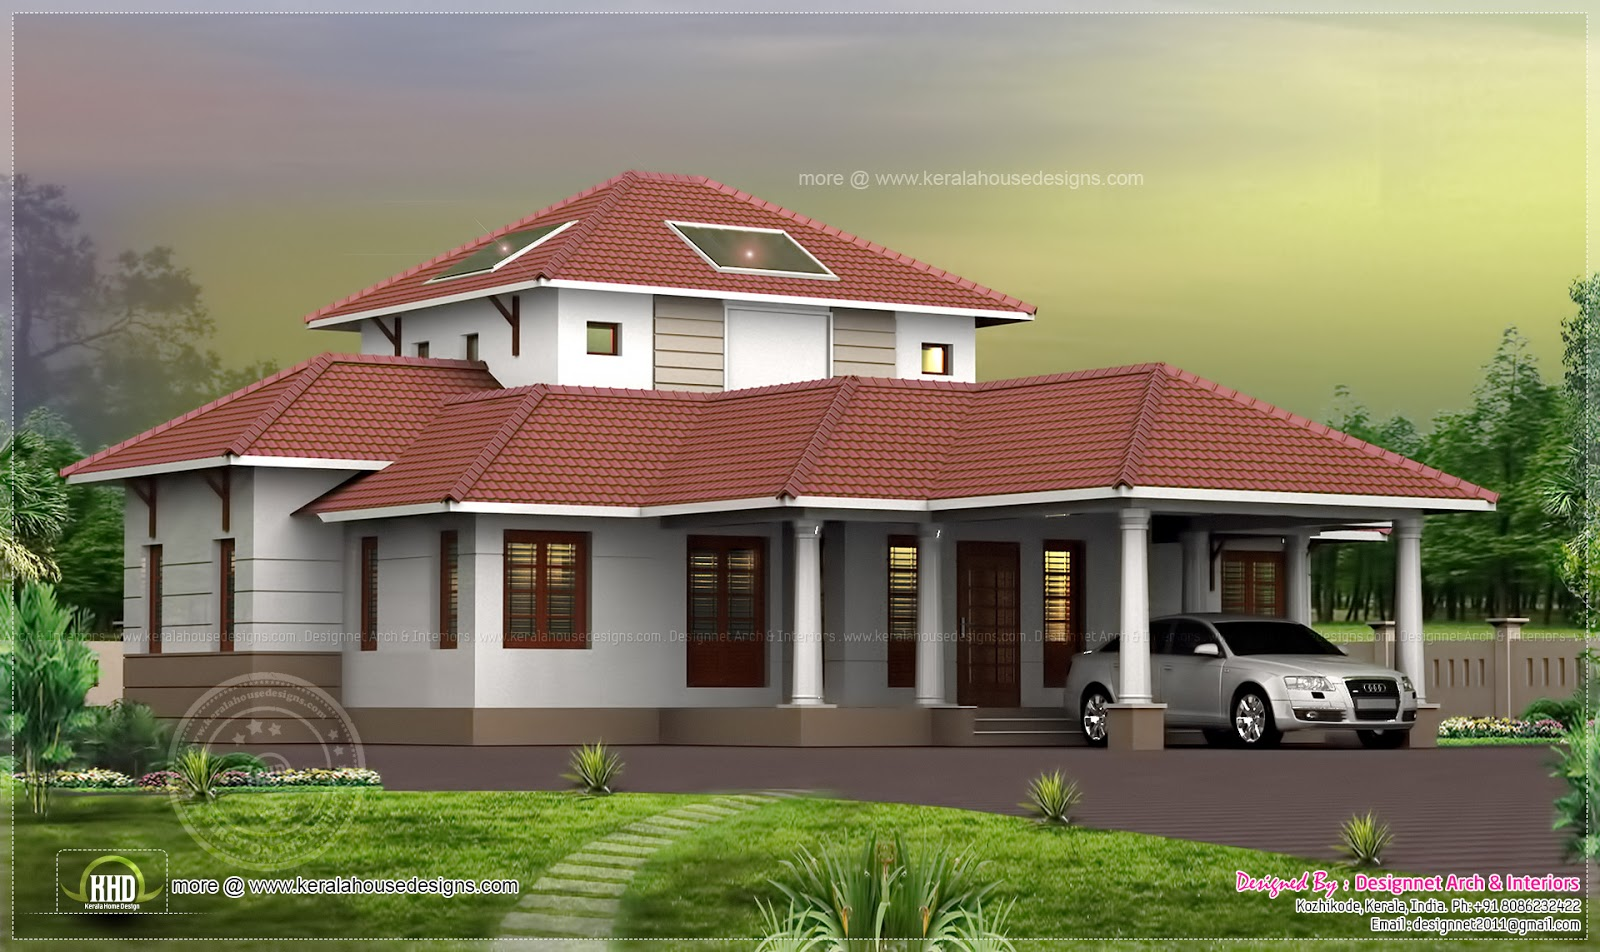 Superb 3 Bedroom Tradition Kerala Home With Nadumuttam Part - 2: Kerala Courtyard House